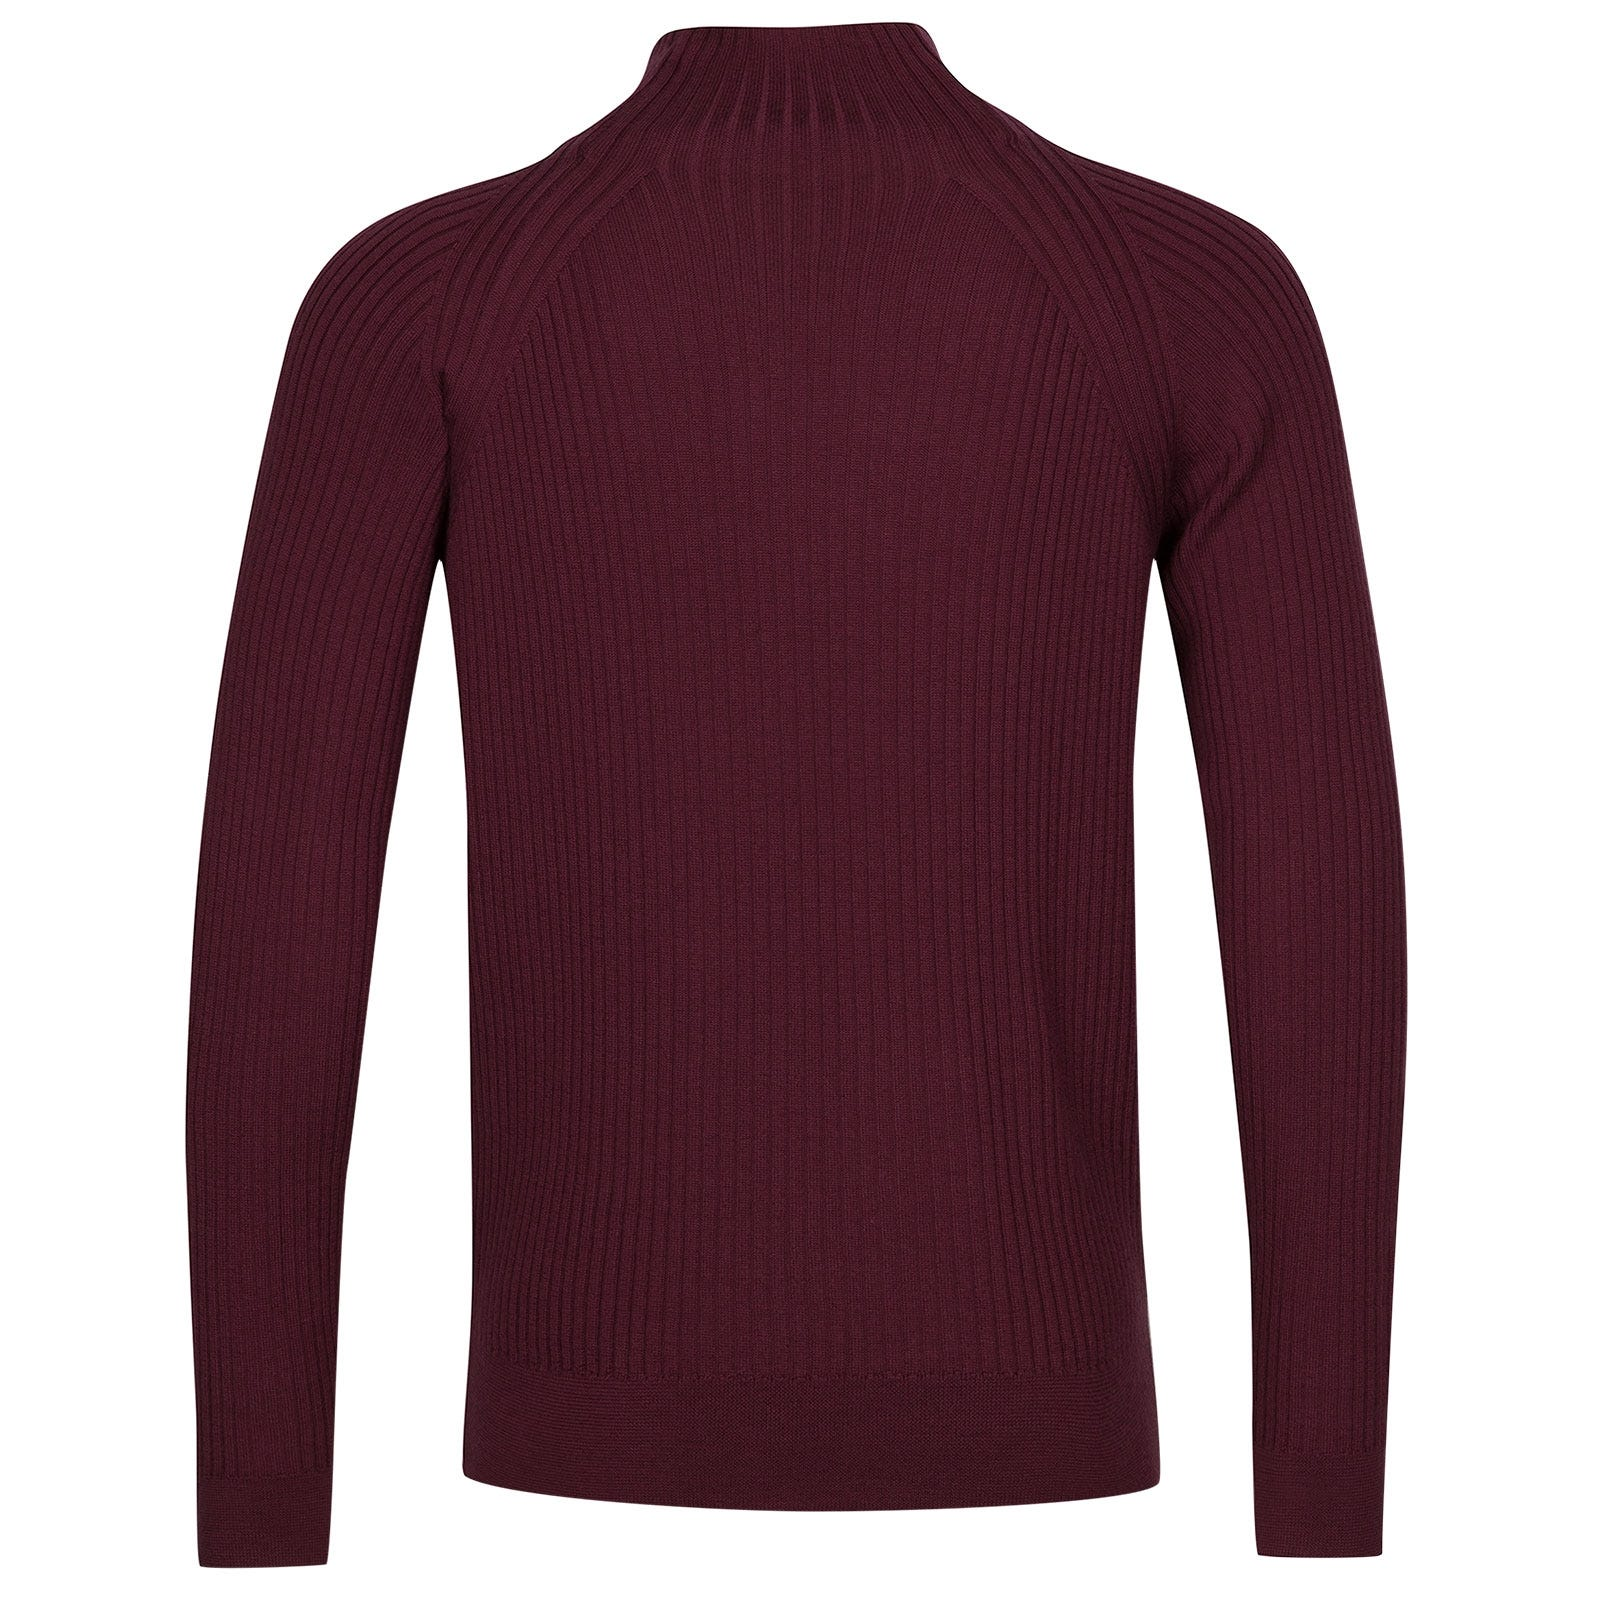 John Smedley Magnet Extra Fine Merino Wool Pullover in Bordeaux-S